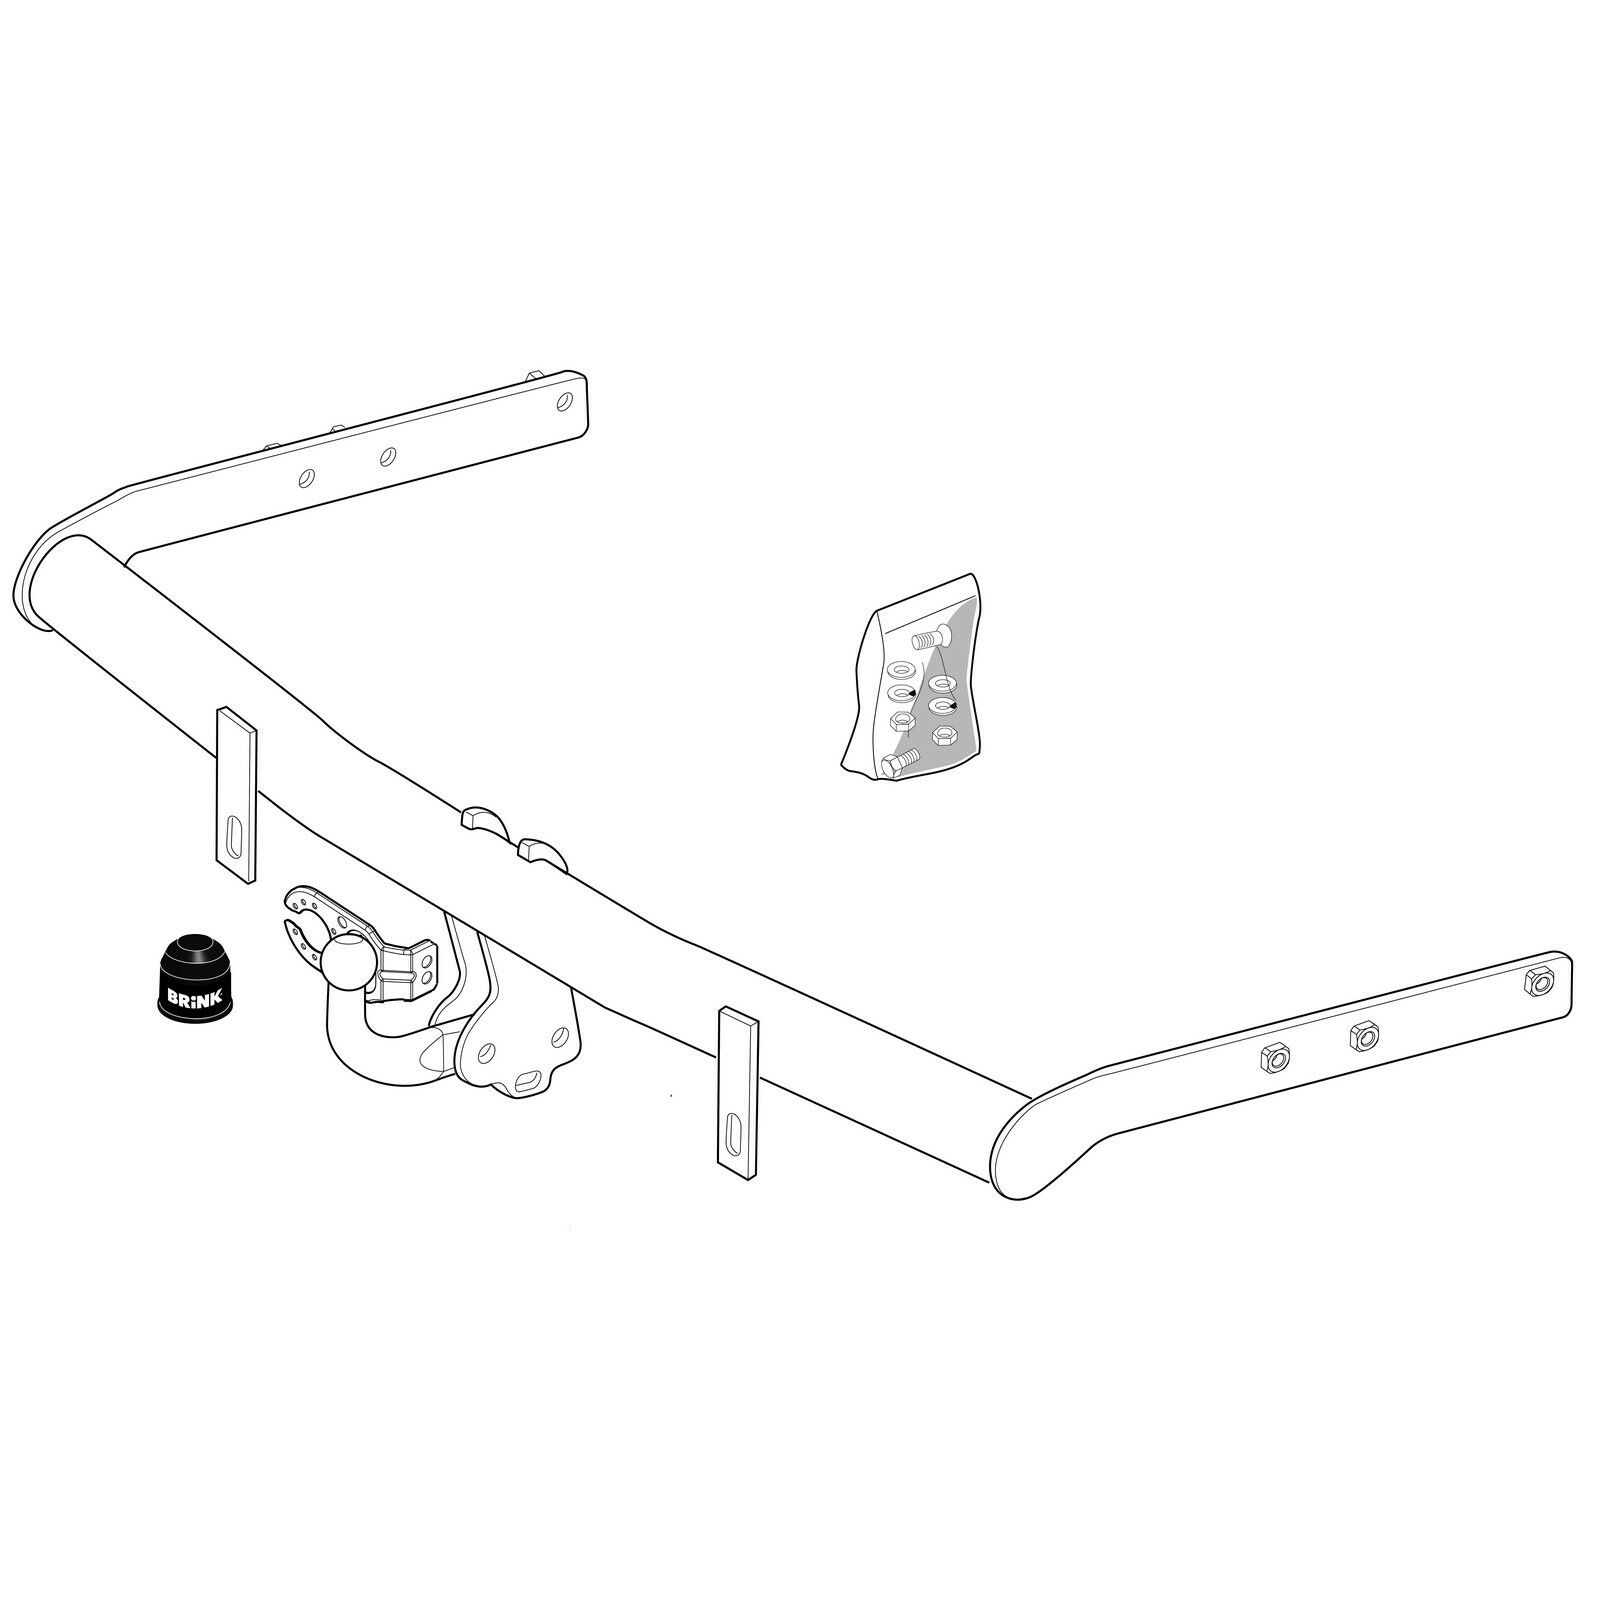 Brink Towbar For Volkswagen Sharan 2000 2010 Swan Neck Tow Bar Ebay Wiring Diagram